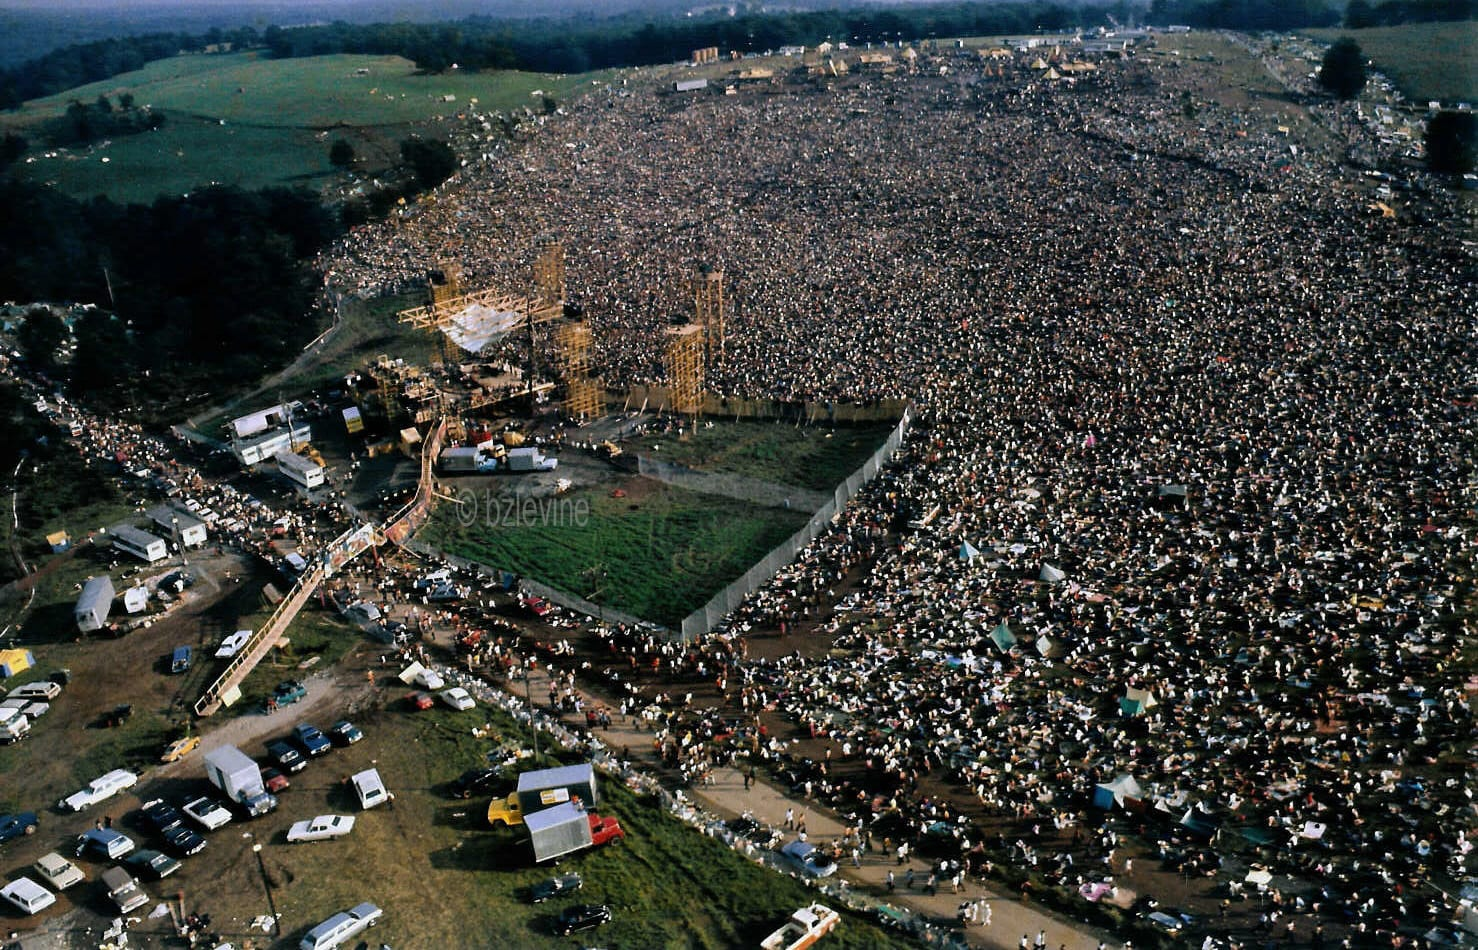 Insomniac wants EDC at Woodstock site